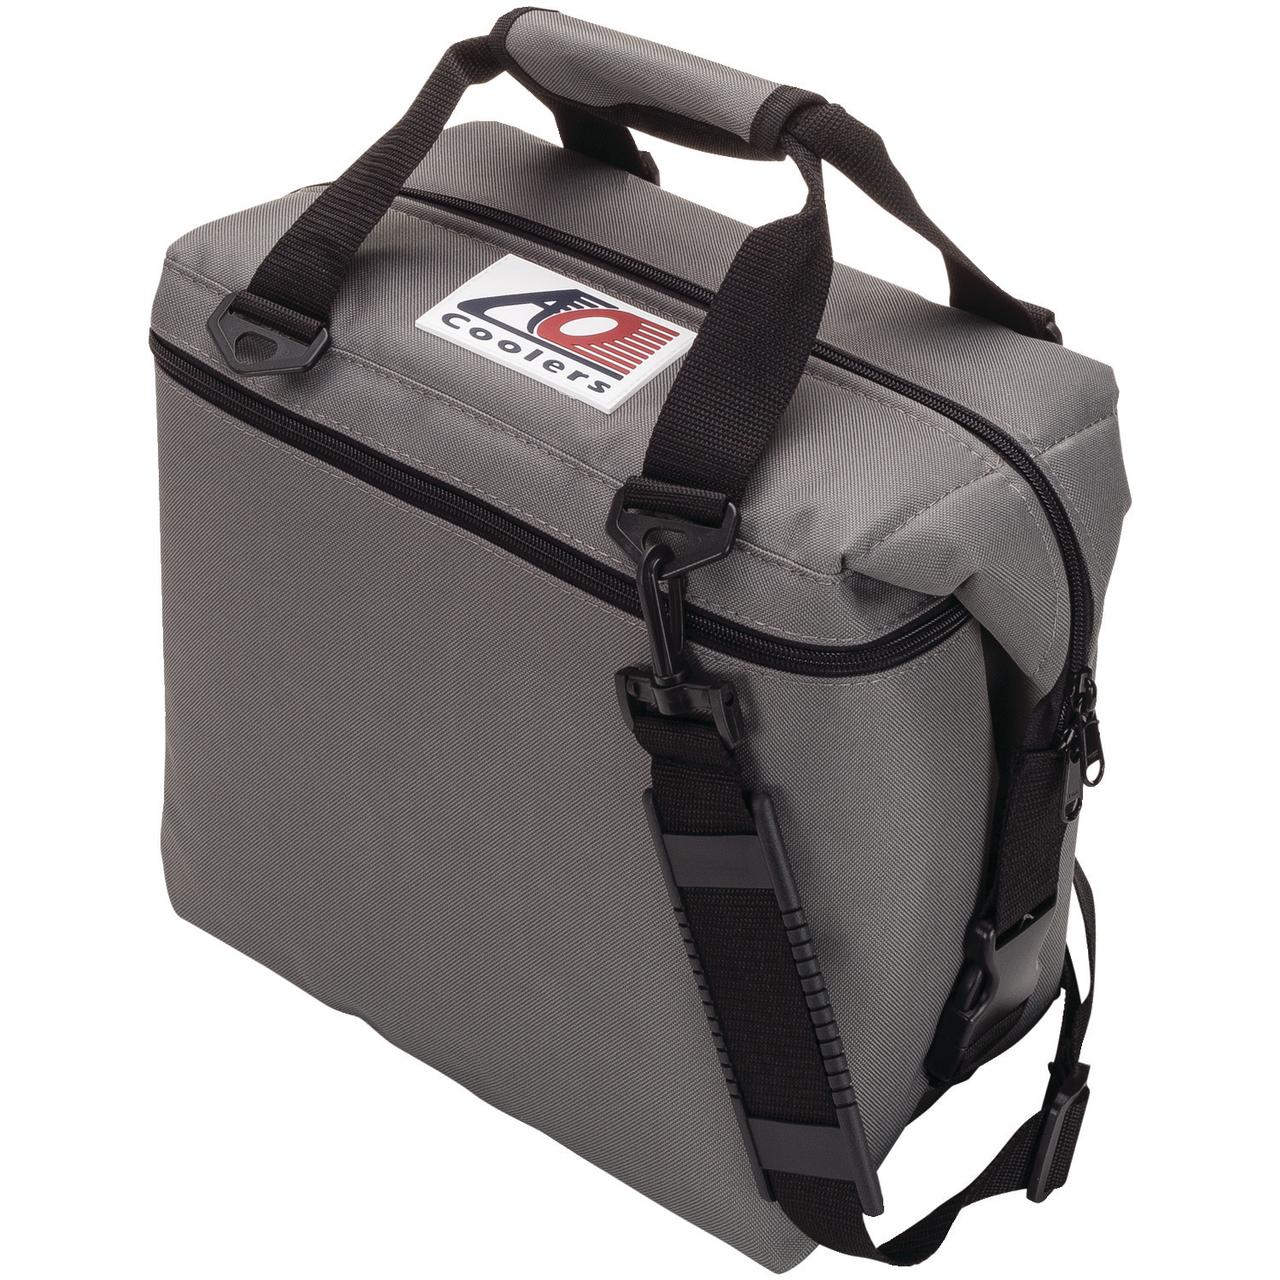 AO Coolers Canvas Soft Cooler with High Density Insulation